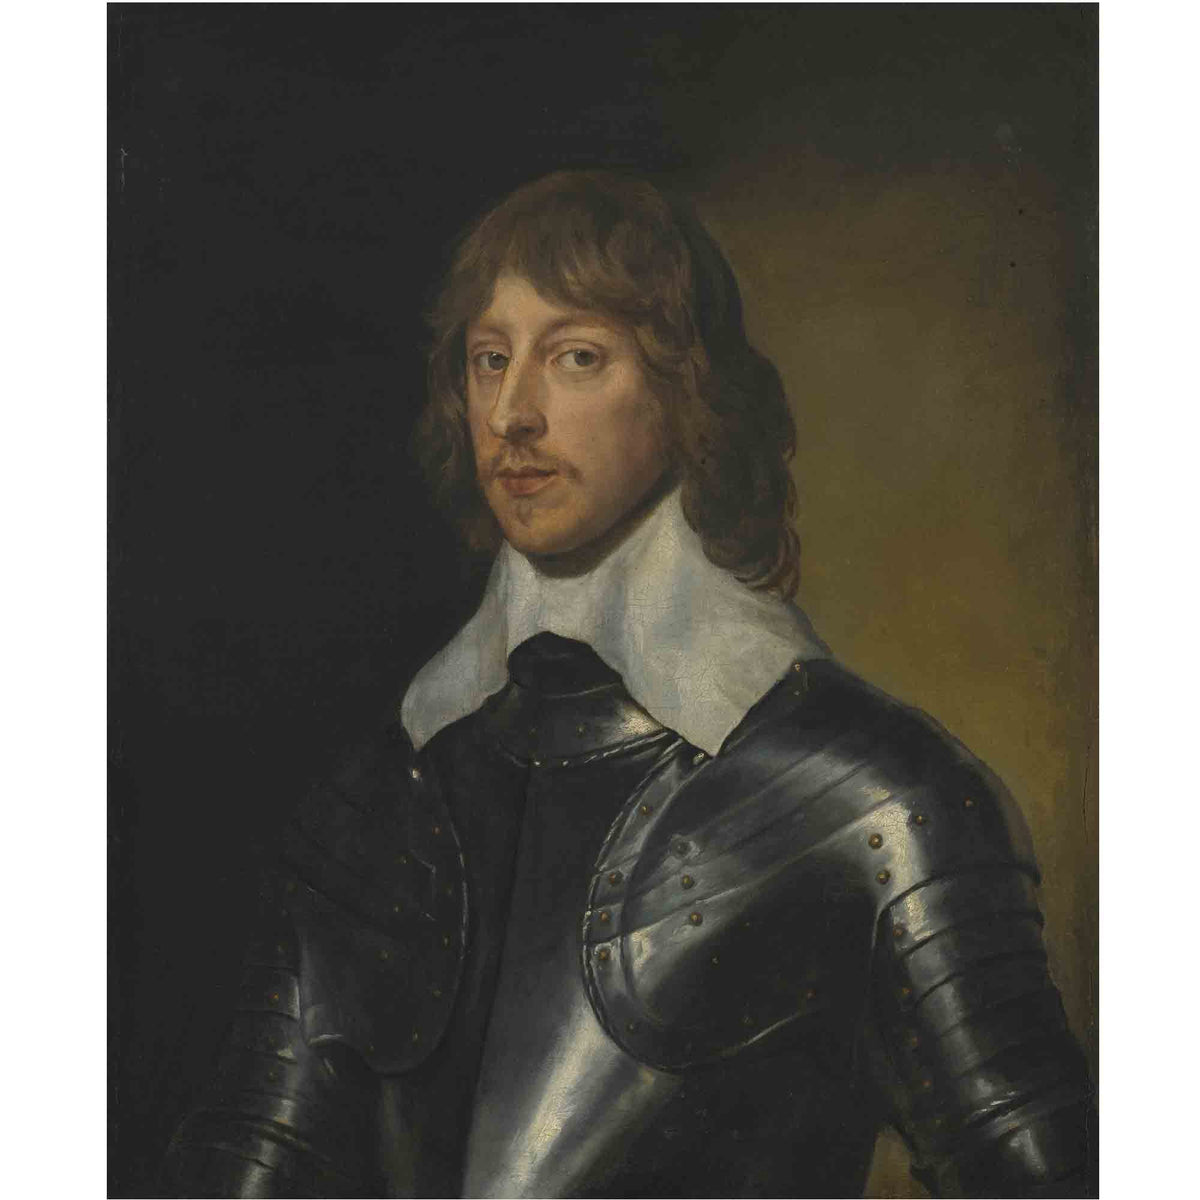 George, Baron Goring. Artist: Anthony van Dyck Home & Garden > Decor > Artwork > Posters, Prints, & Visual Artwork ArtToyourlife